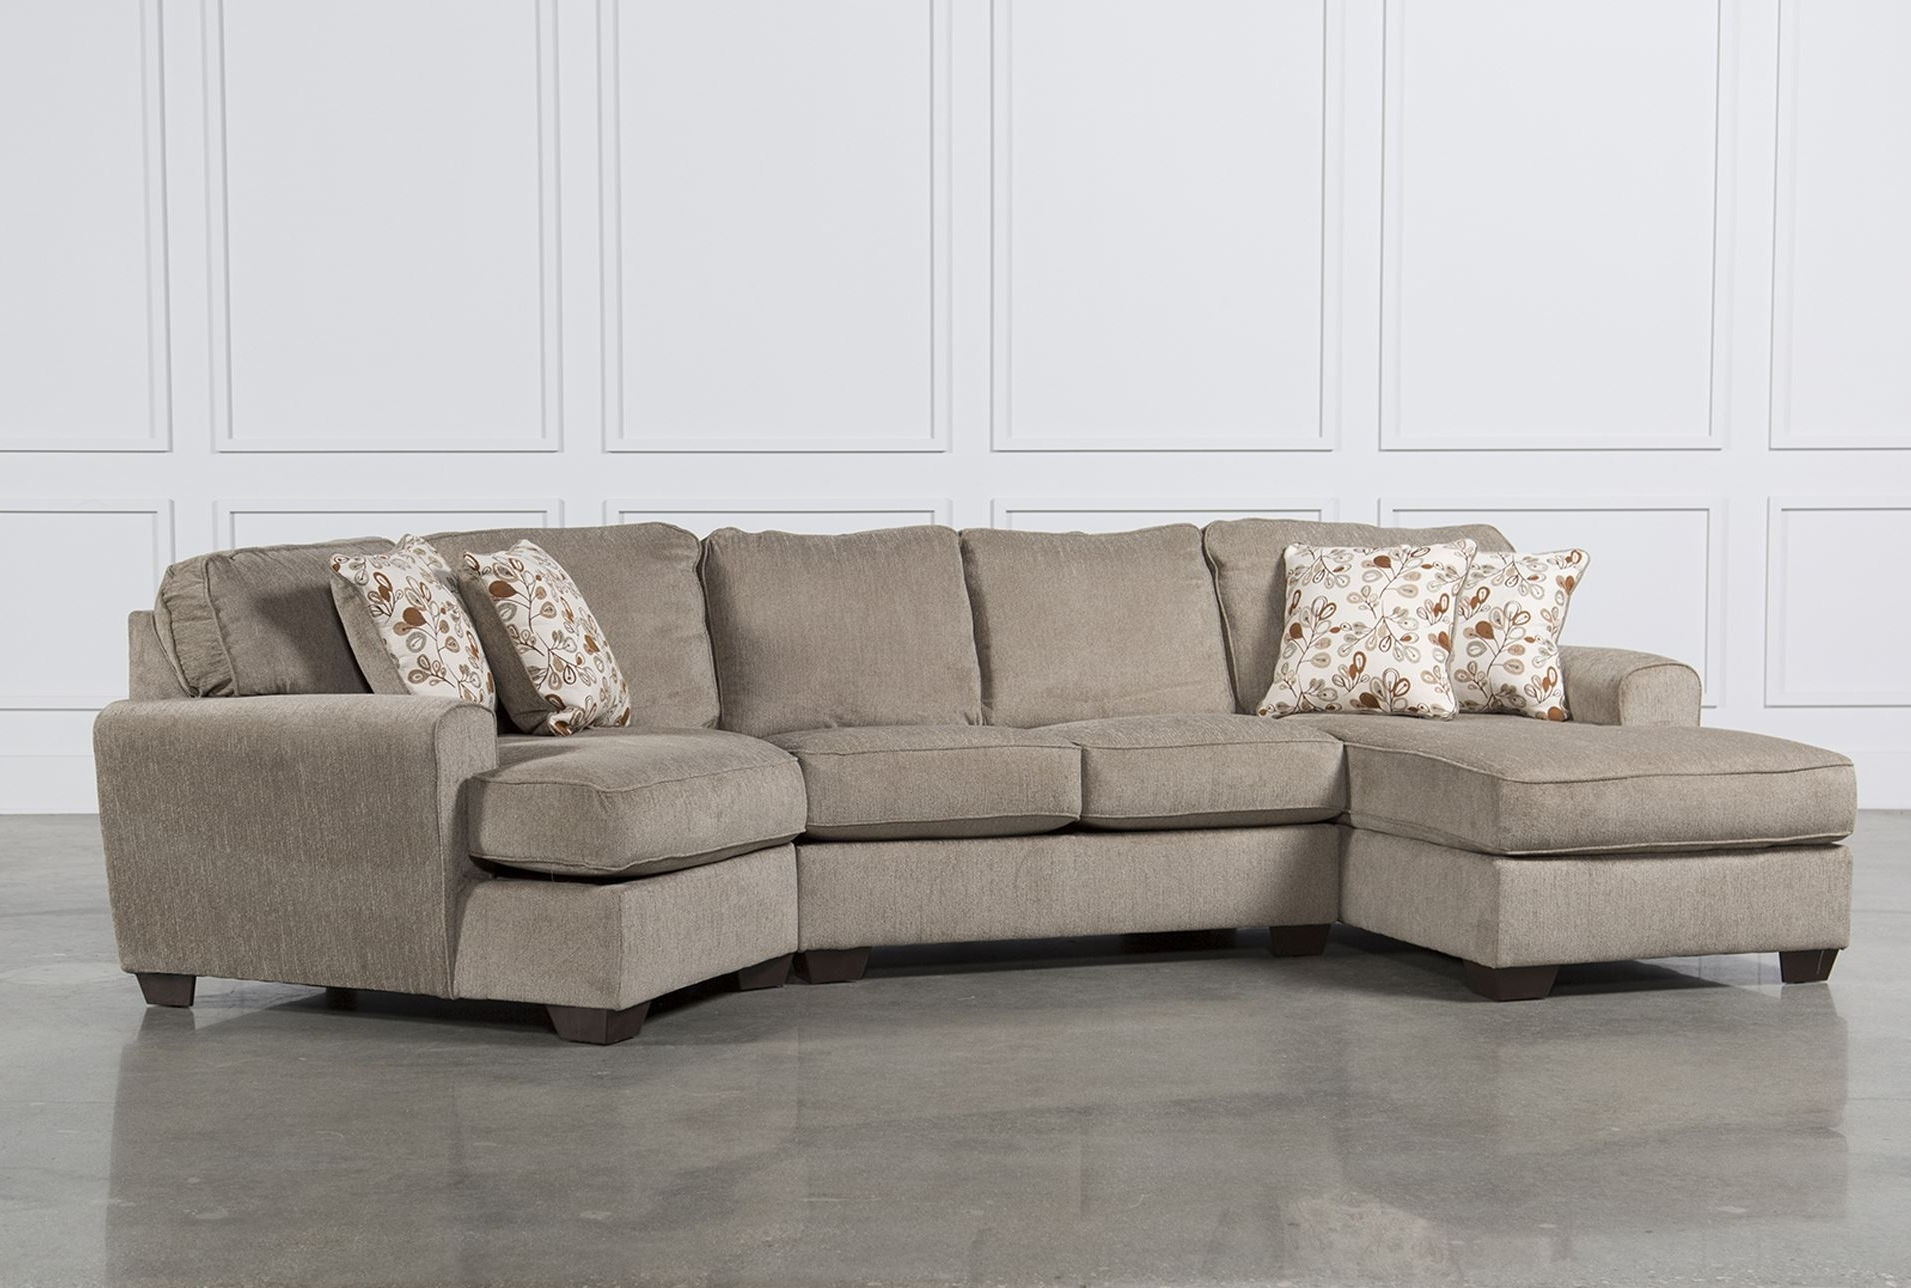 Sectionals With Cuddler And Chaise Within Latest Patola Park 4 Piece Sectional W Raf Cuddler Living Spaces In Sofa (View 12 of 15)